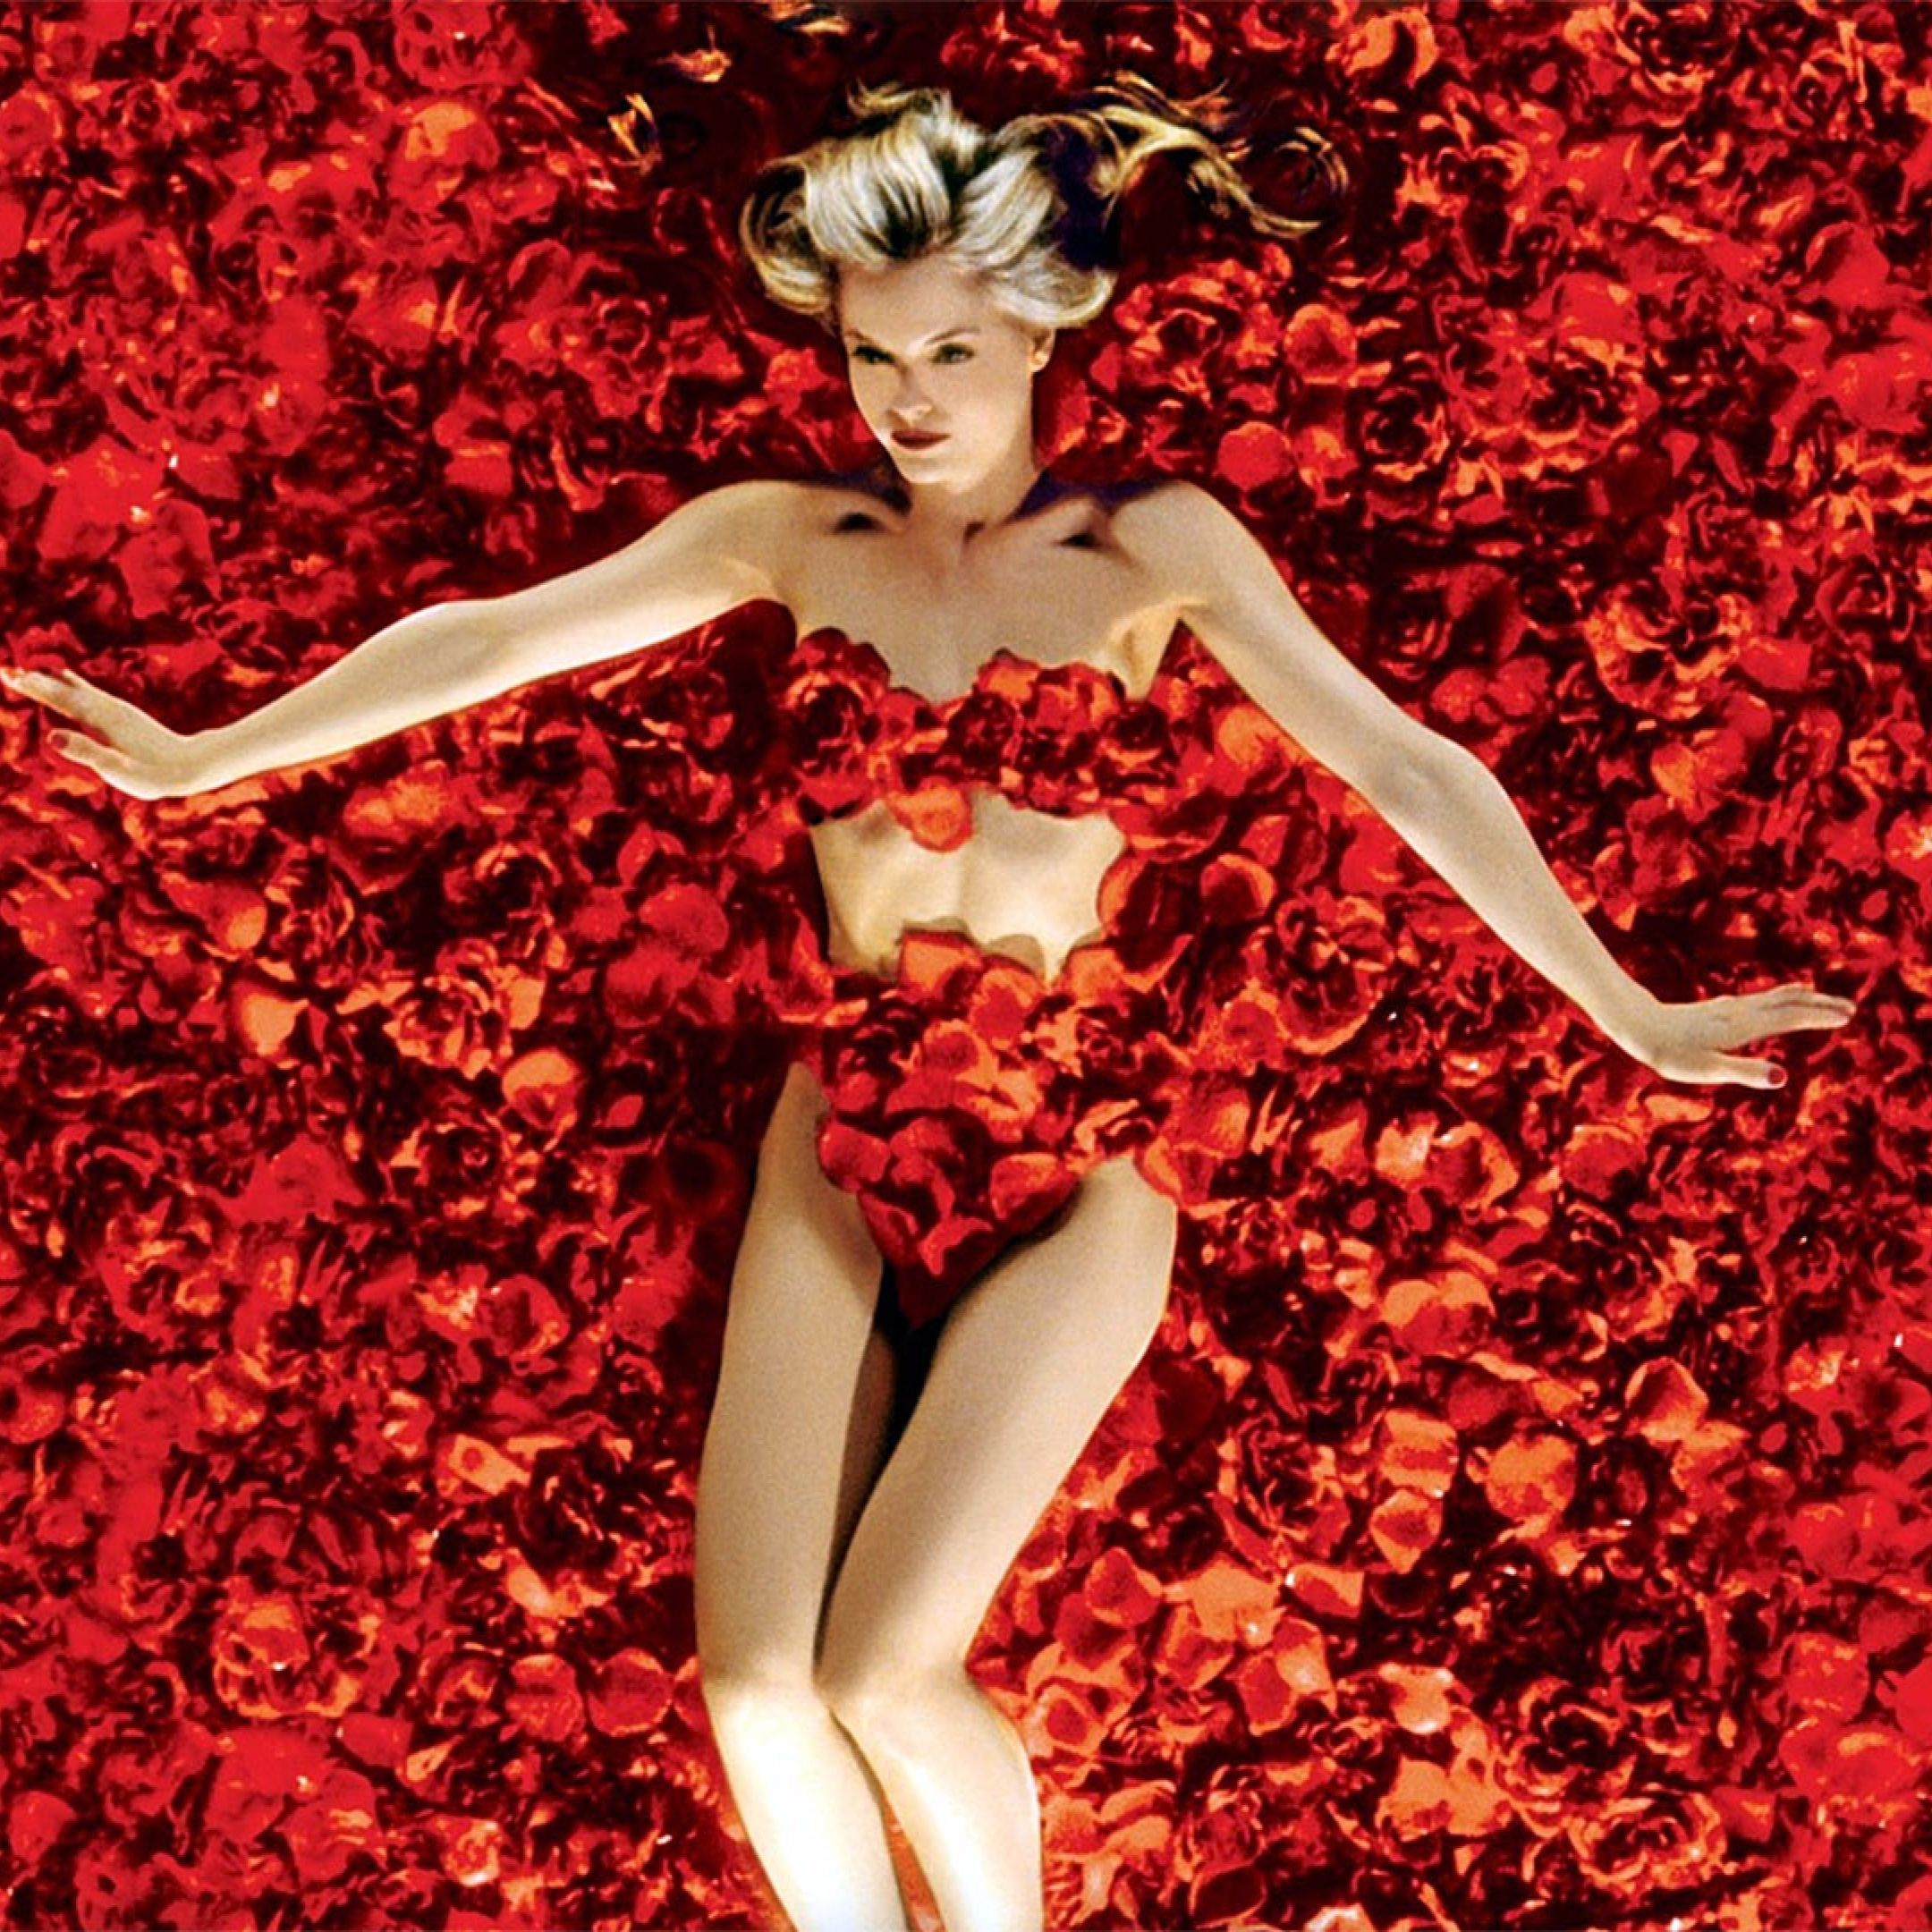 american beauty essay American beauty an essay of symbolism summary (creative writing inspiration images) april 9, 2018 by he wrote an essay about what he went threw when my dad had.